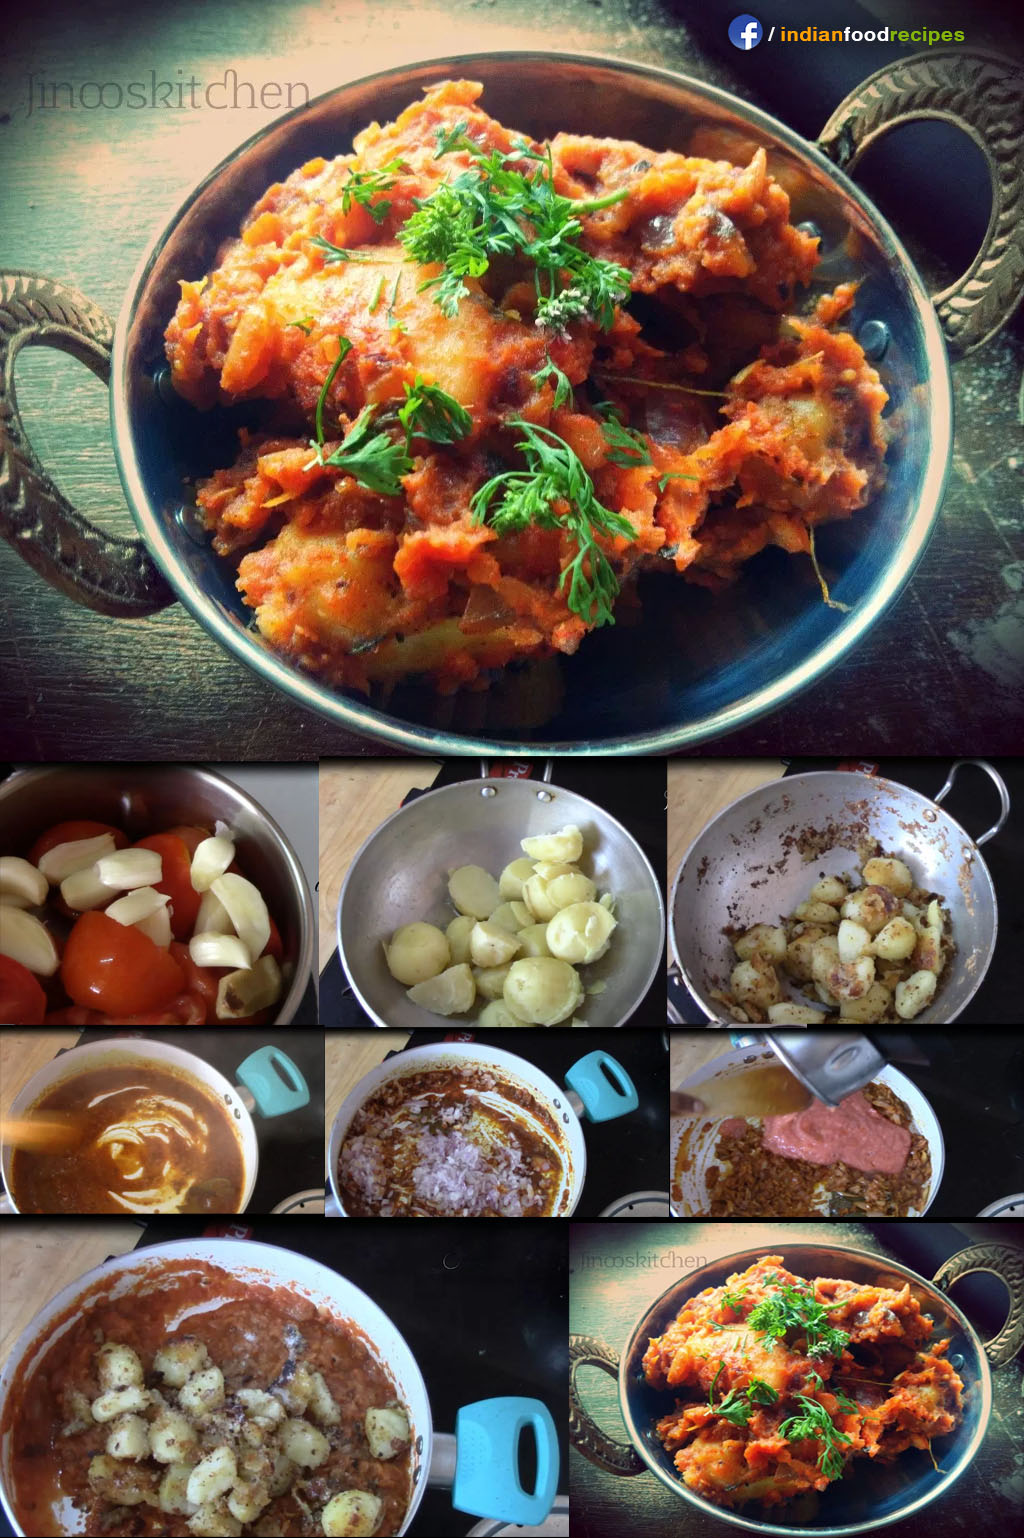 Garlic Potato curry / Lasaniya batata recipe step by step